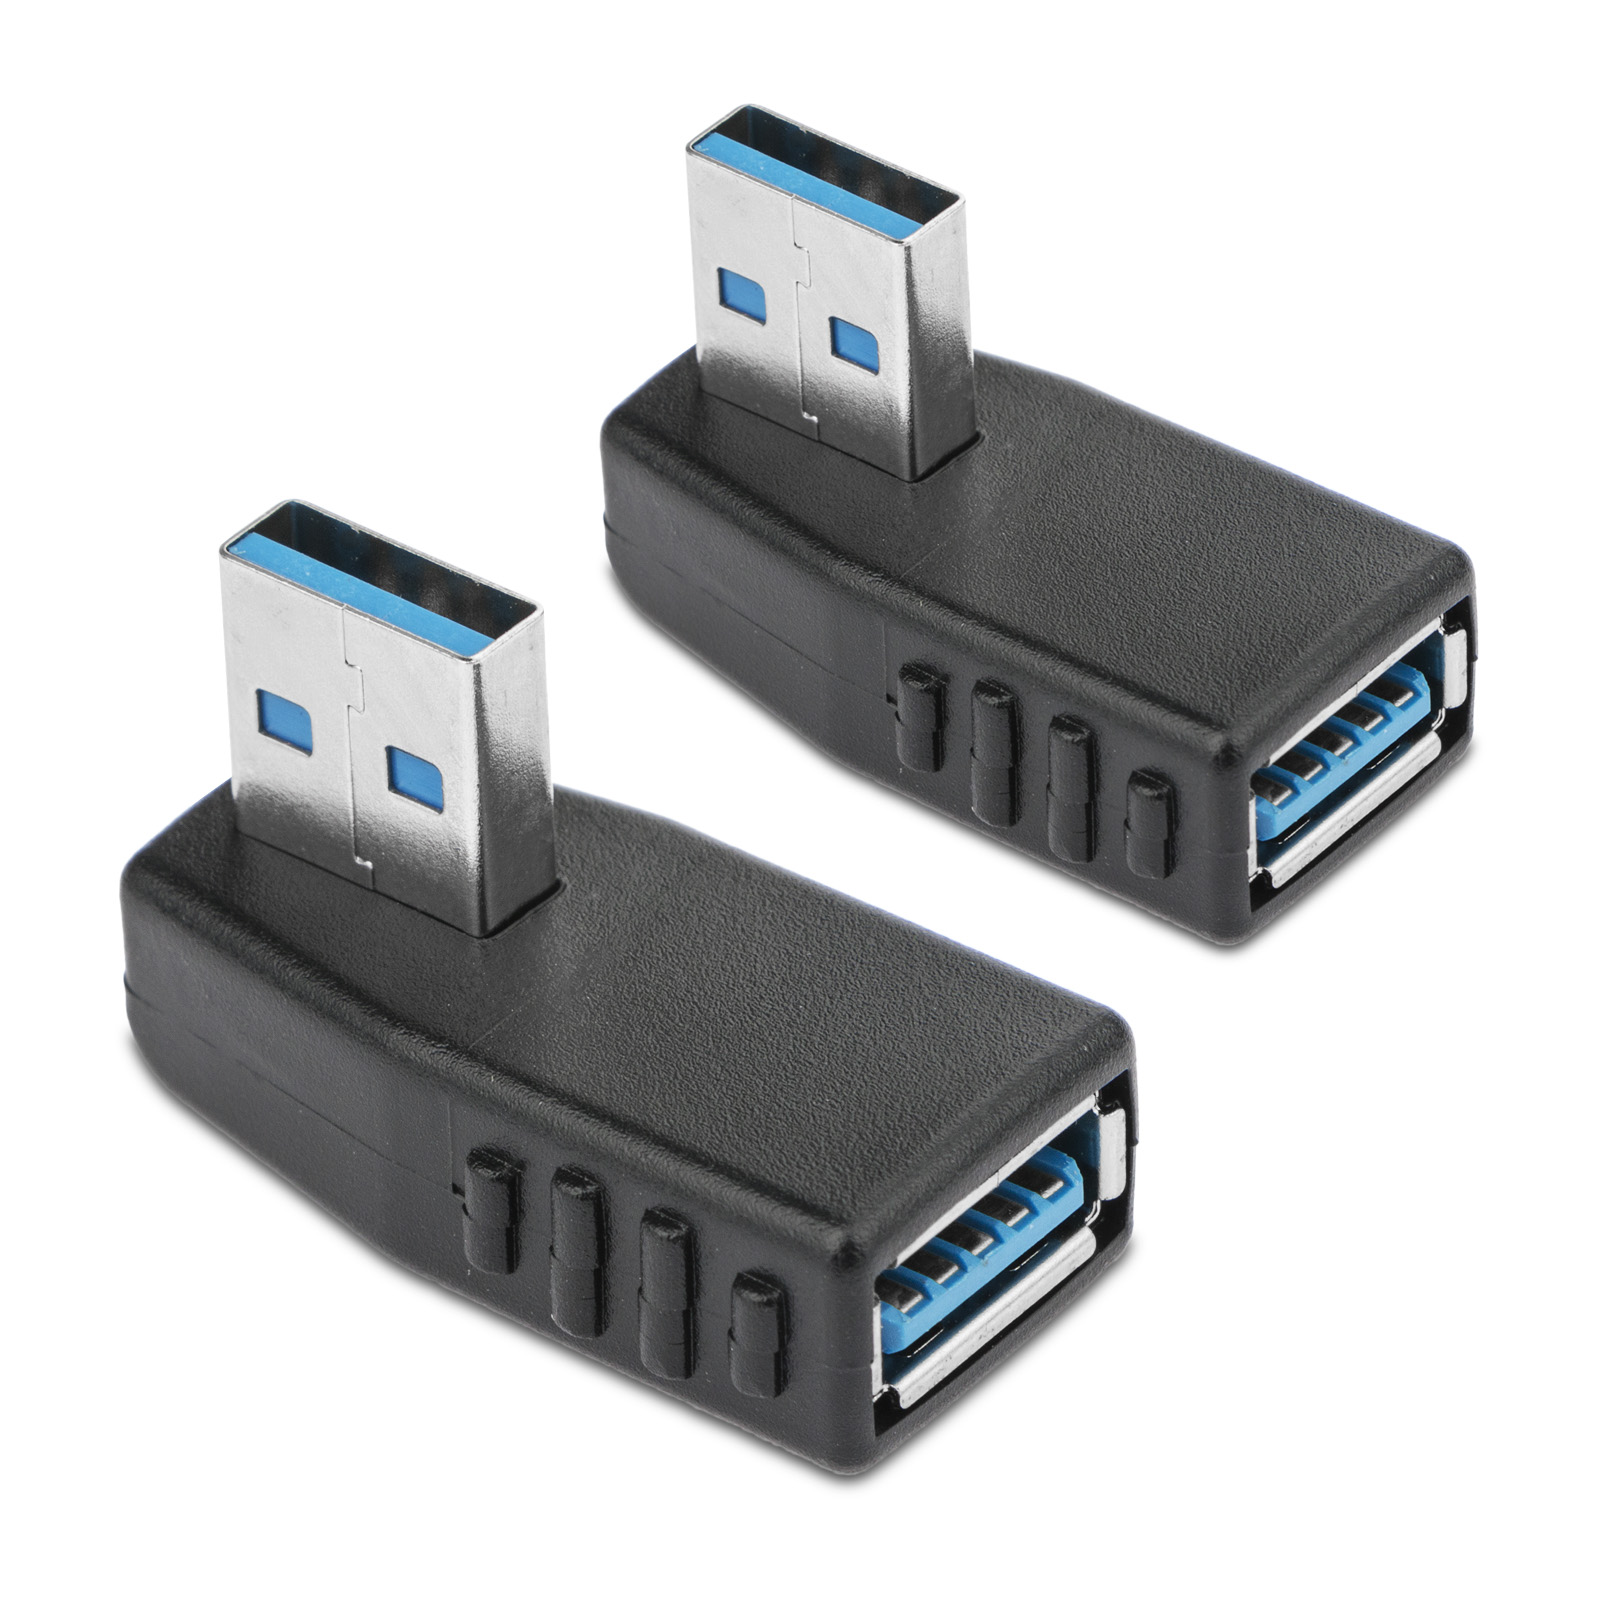 TSV 2-Pack 90 Degree Left Angle USB 3.0 A male to female Adapter Connector Extension Extender